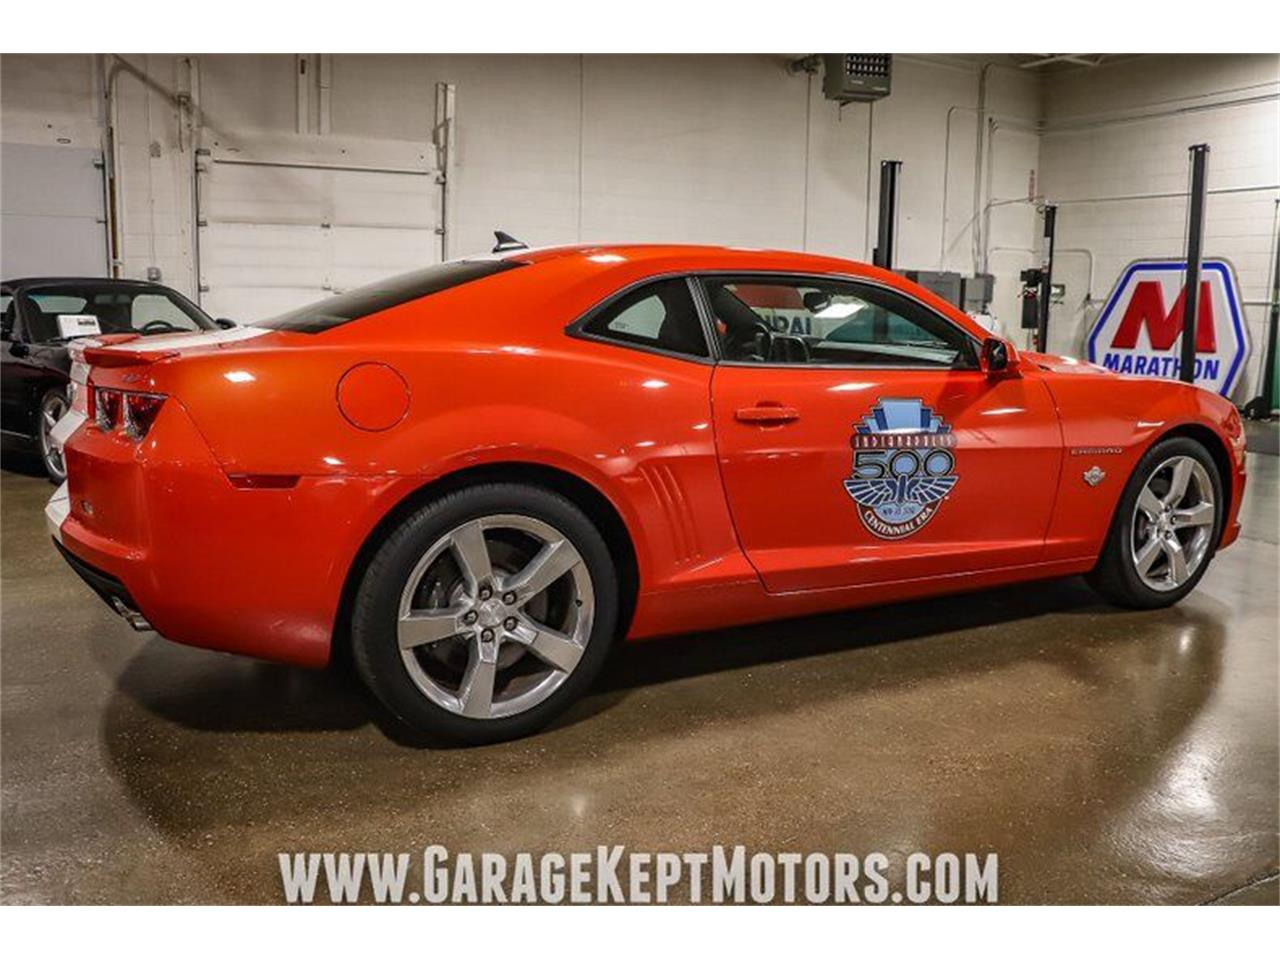 2010 Chevrolet Camaro (CC-1345490) for sale in Grand Rapids, Michigan